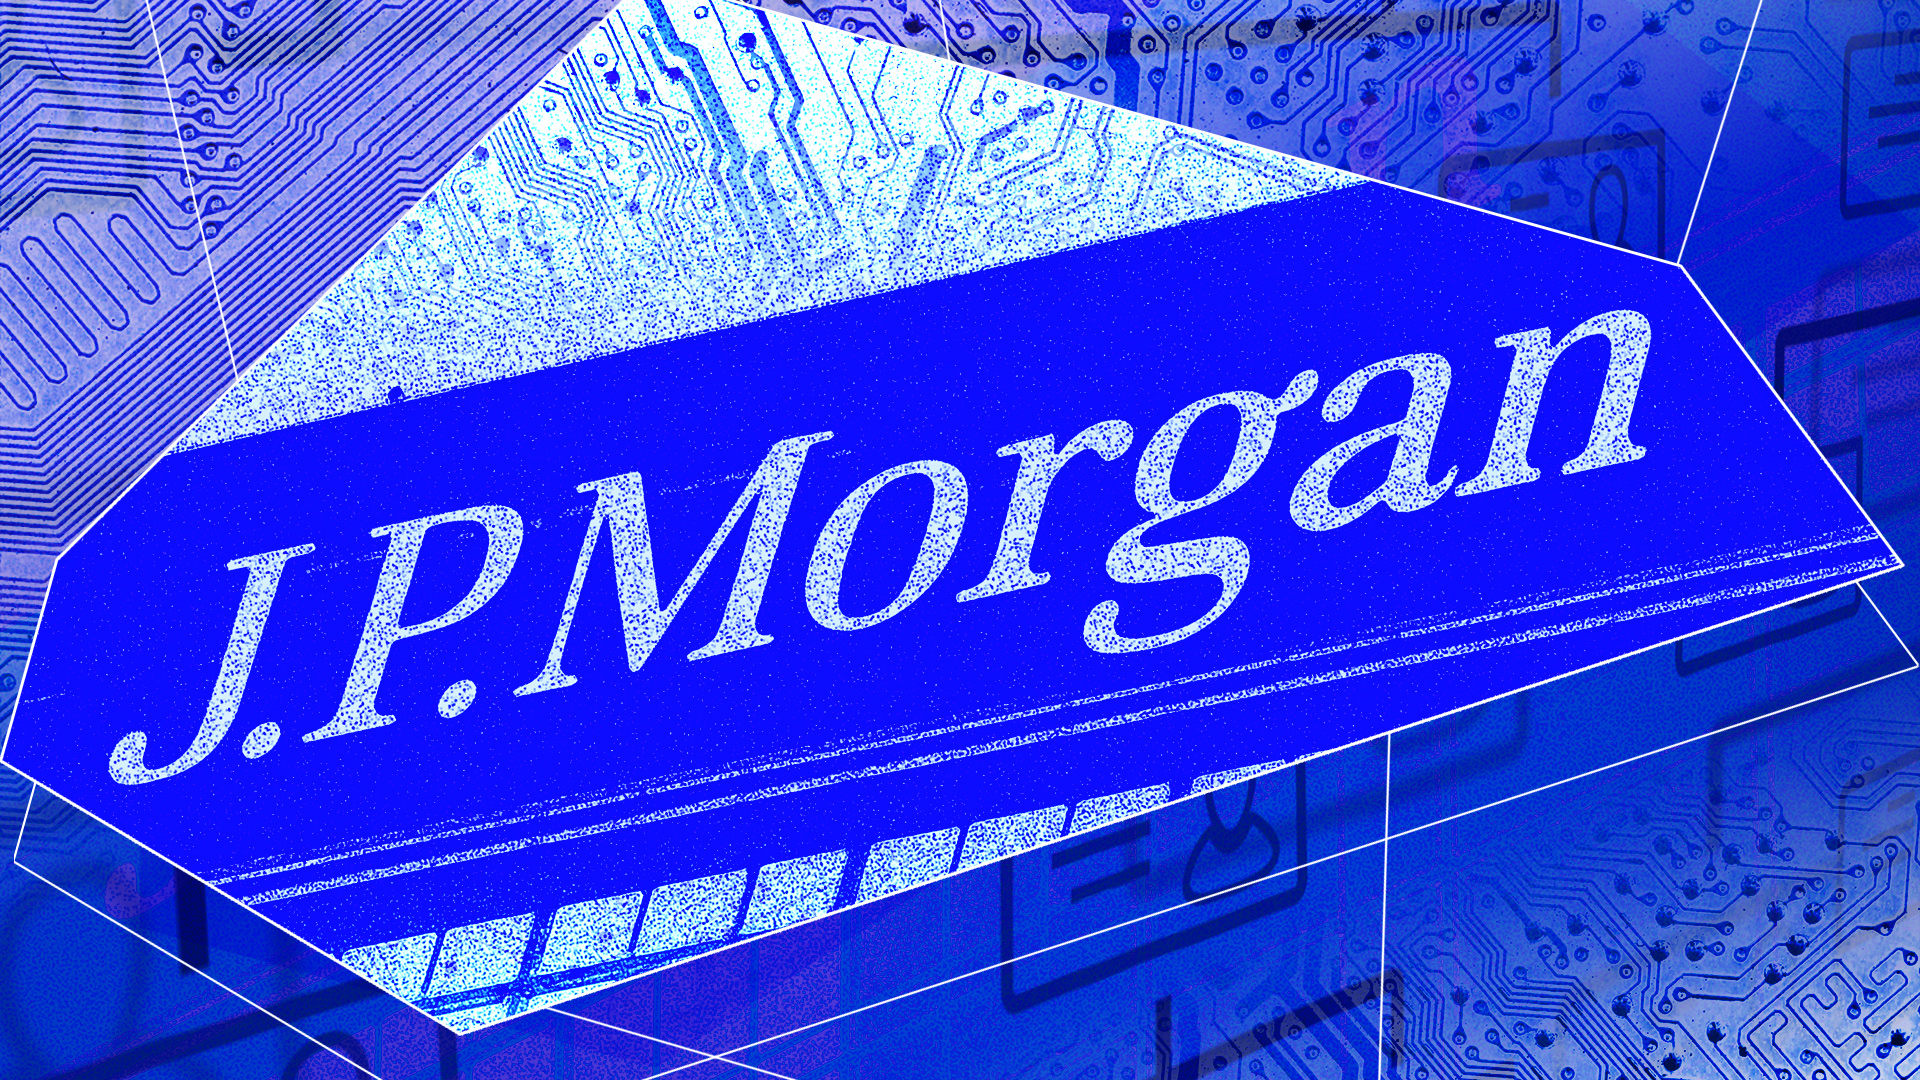 JPMorgan will offer bitcoin trading if there is client demand, says COO